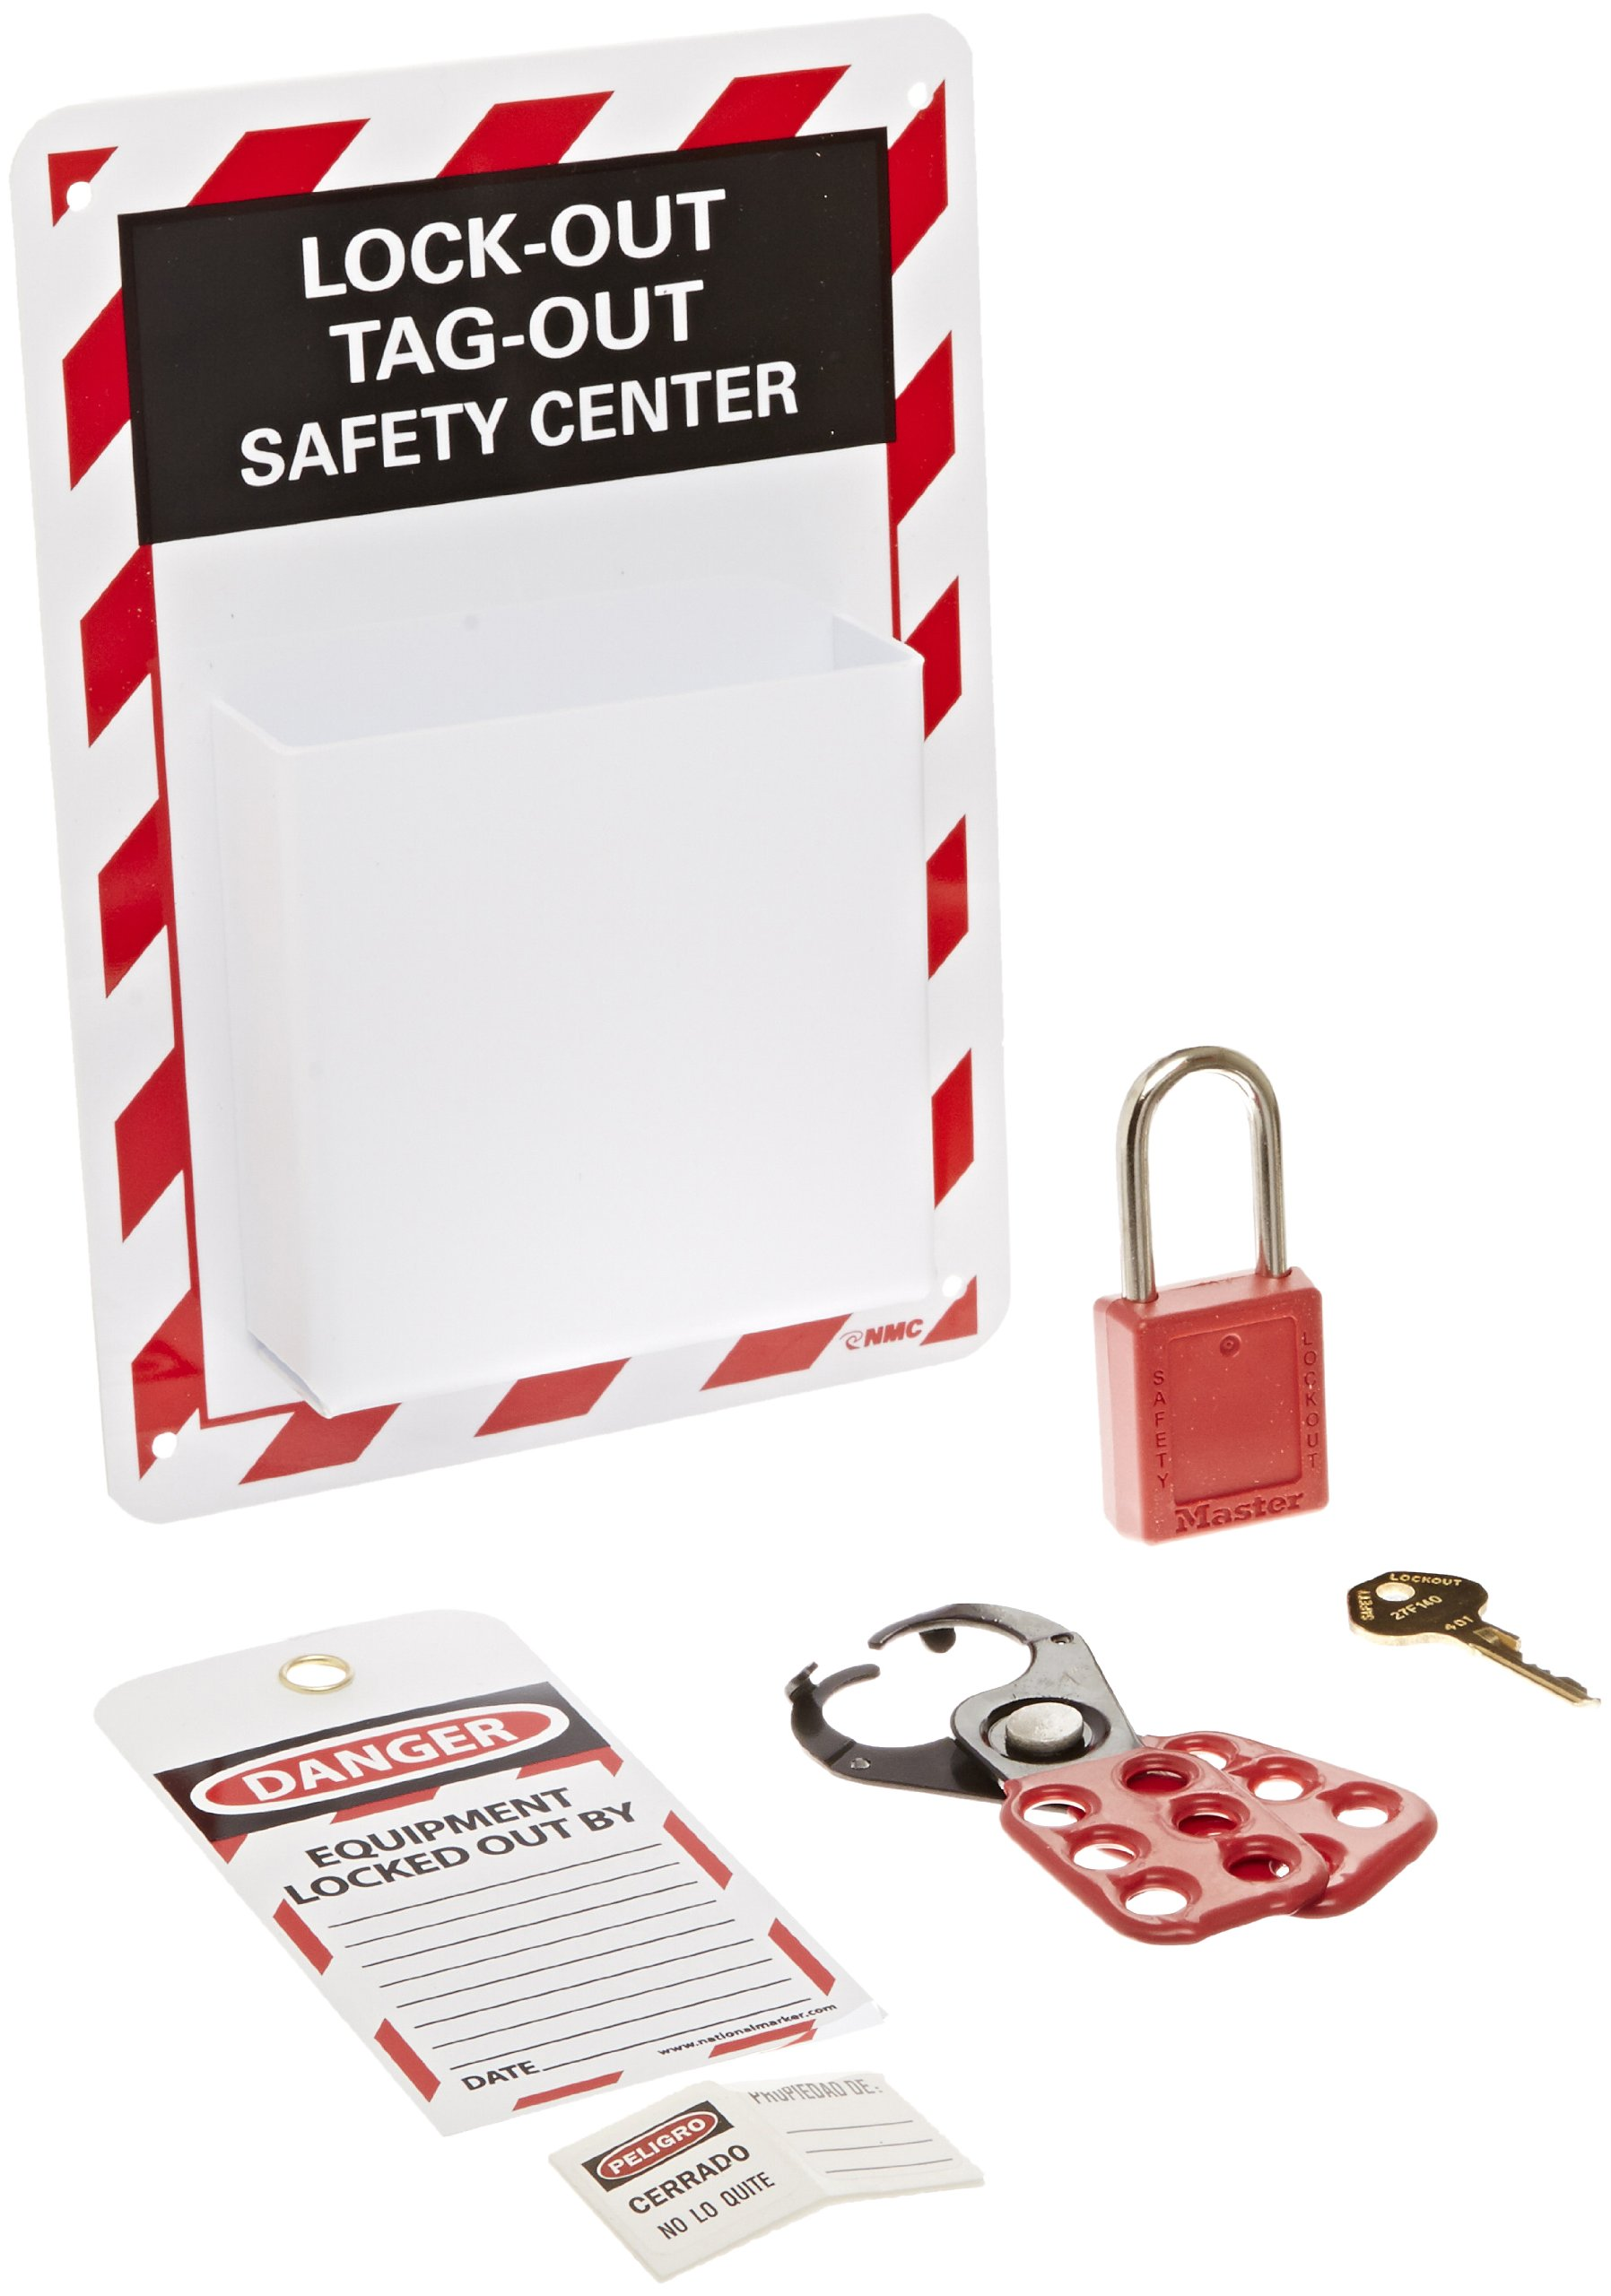 NMC MCLO1 4 Piece High Impact Polystyrene Equipped Micro Lockout Center Kit by NMC (Image #1)